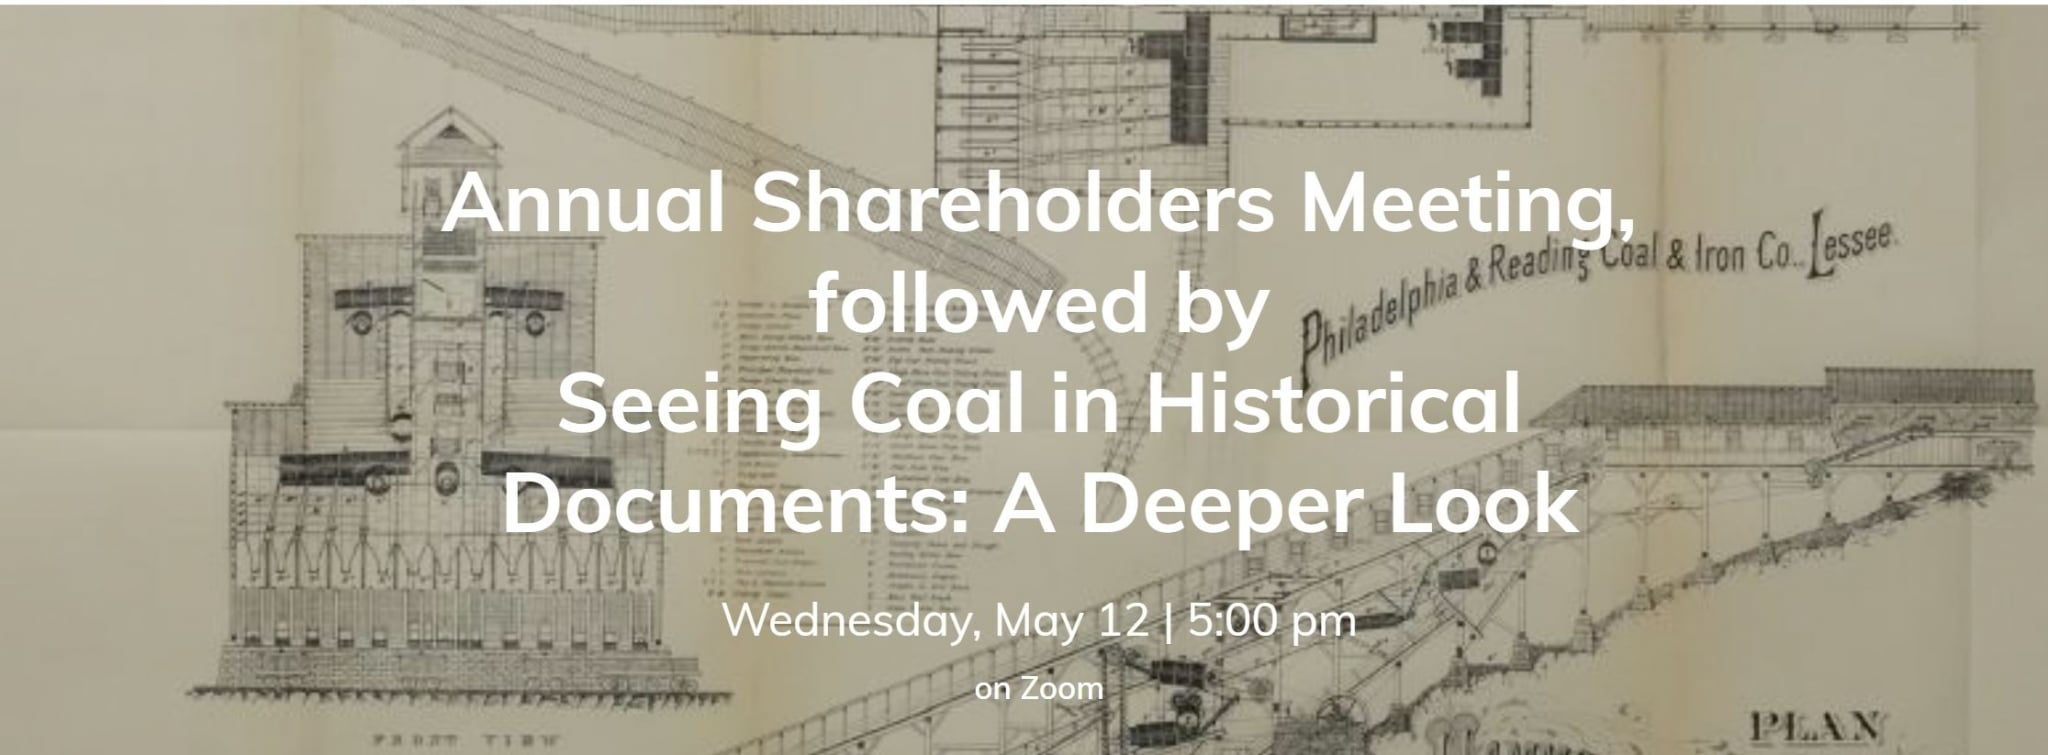 May 12th Annual Shareholder Meeting